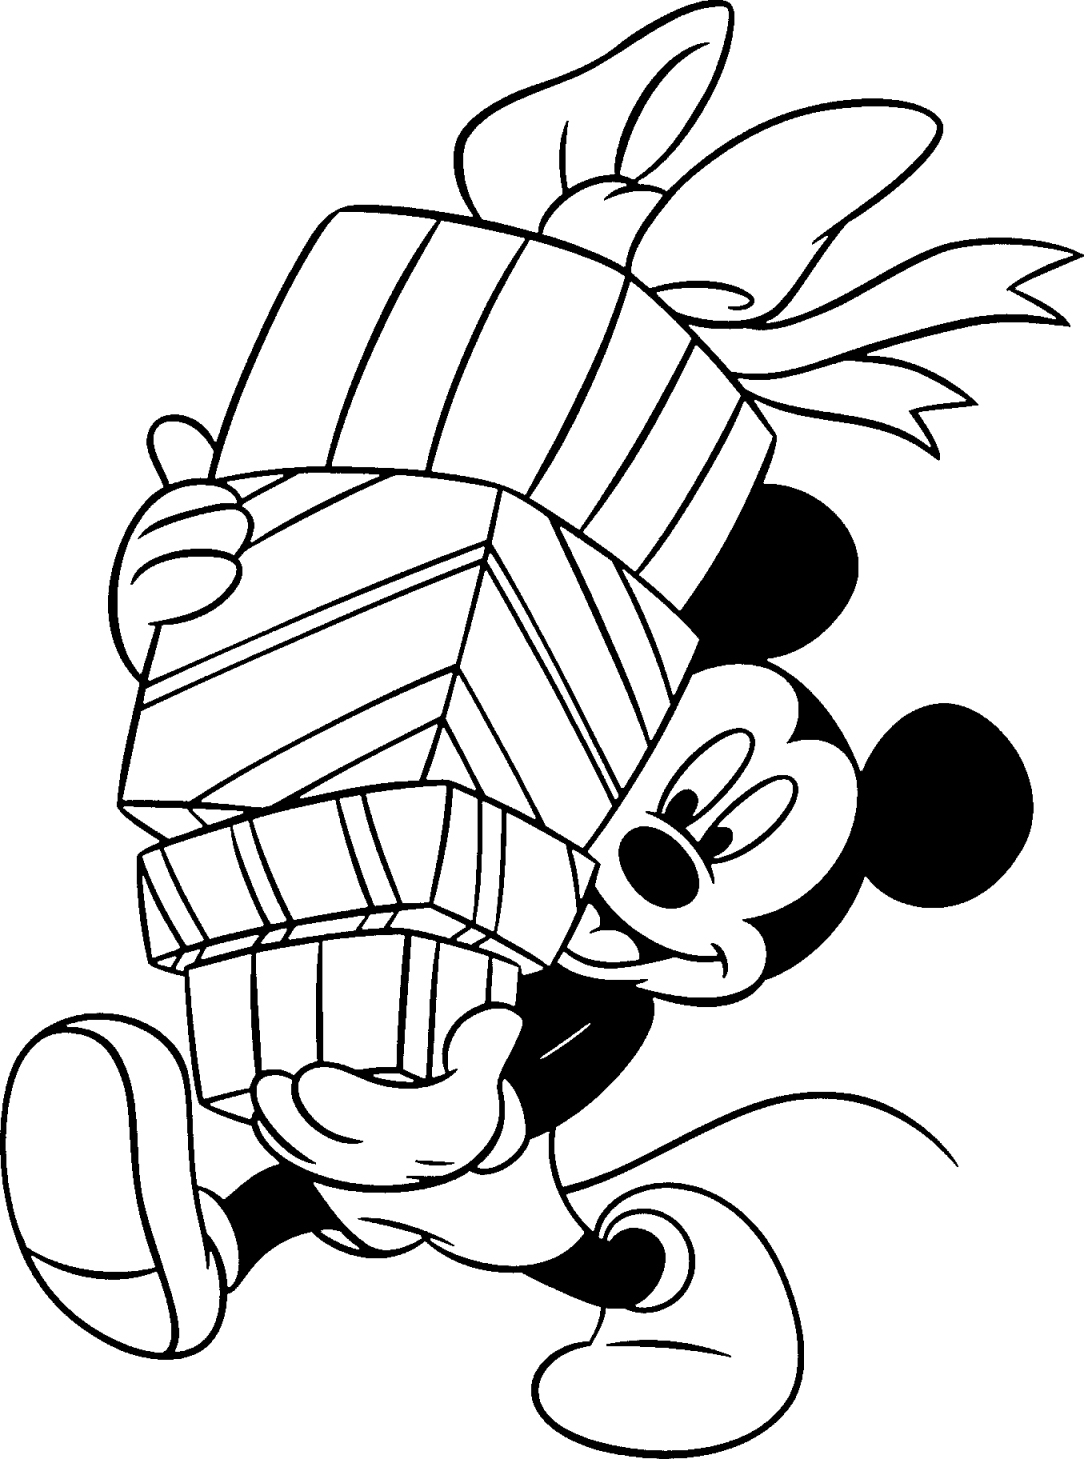 xmas disney coloring pages - photo#4